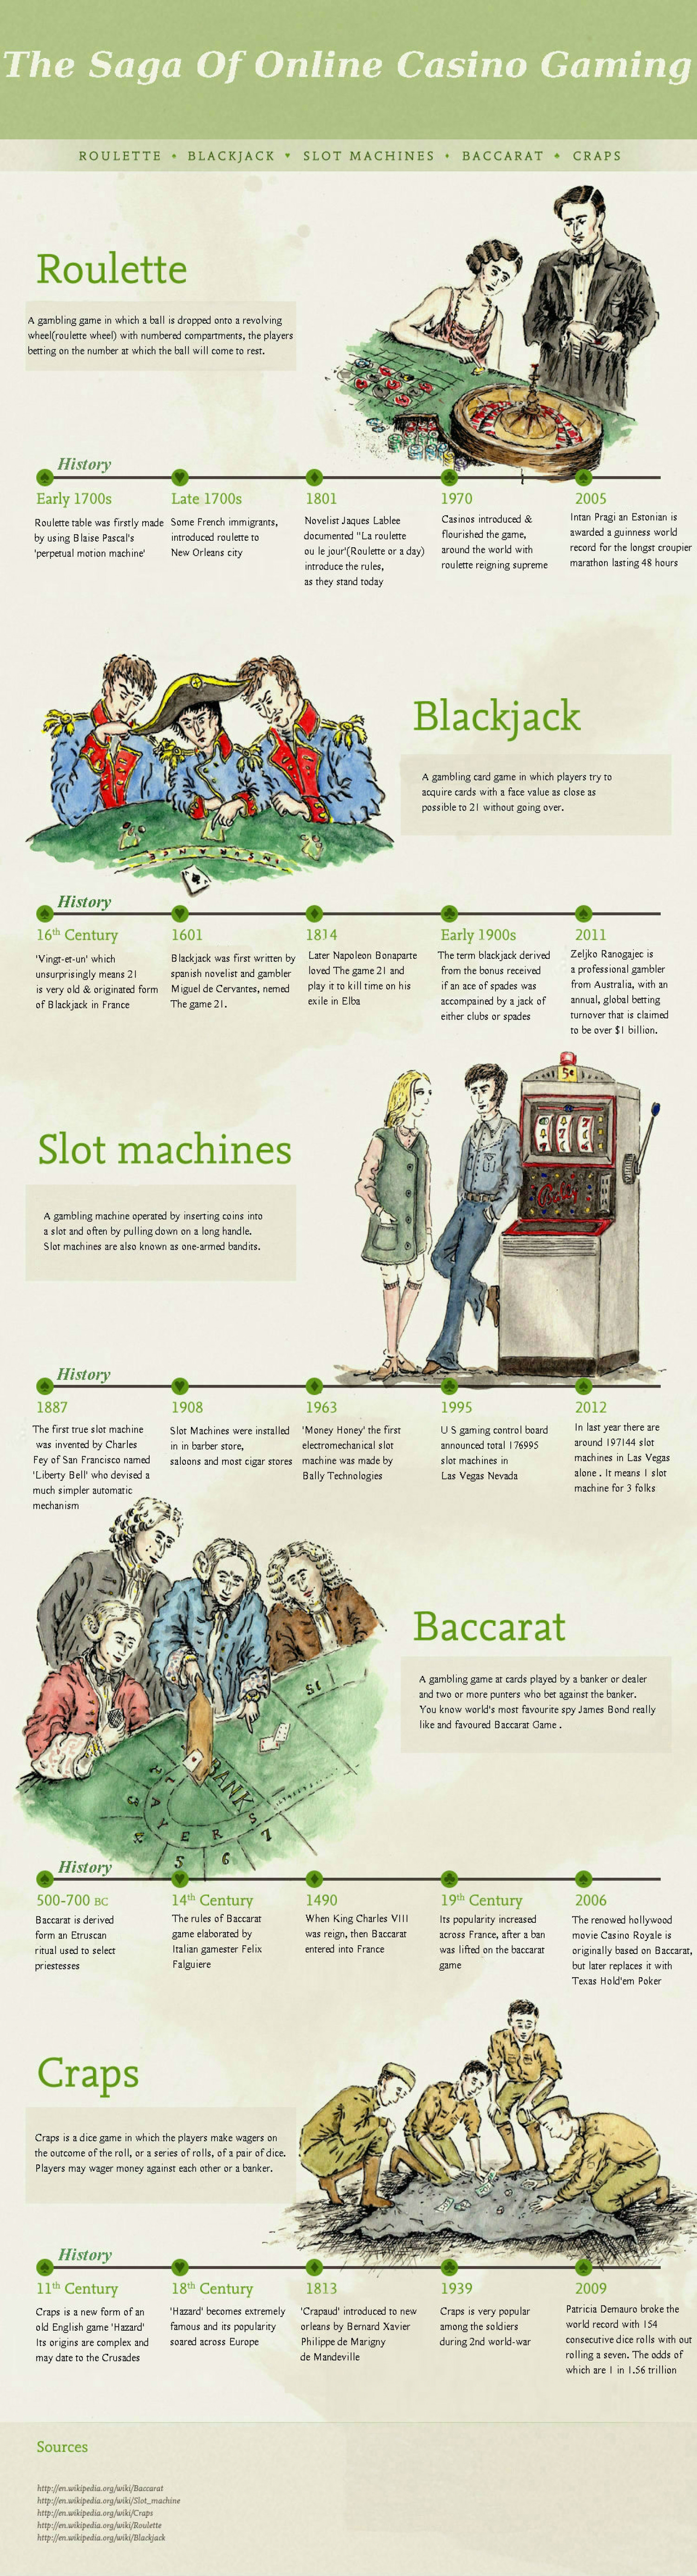 The saga of online casino gaming Infographic